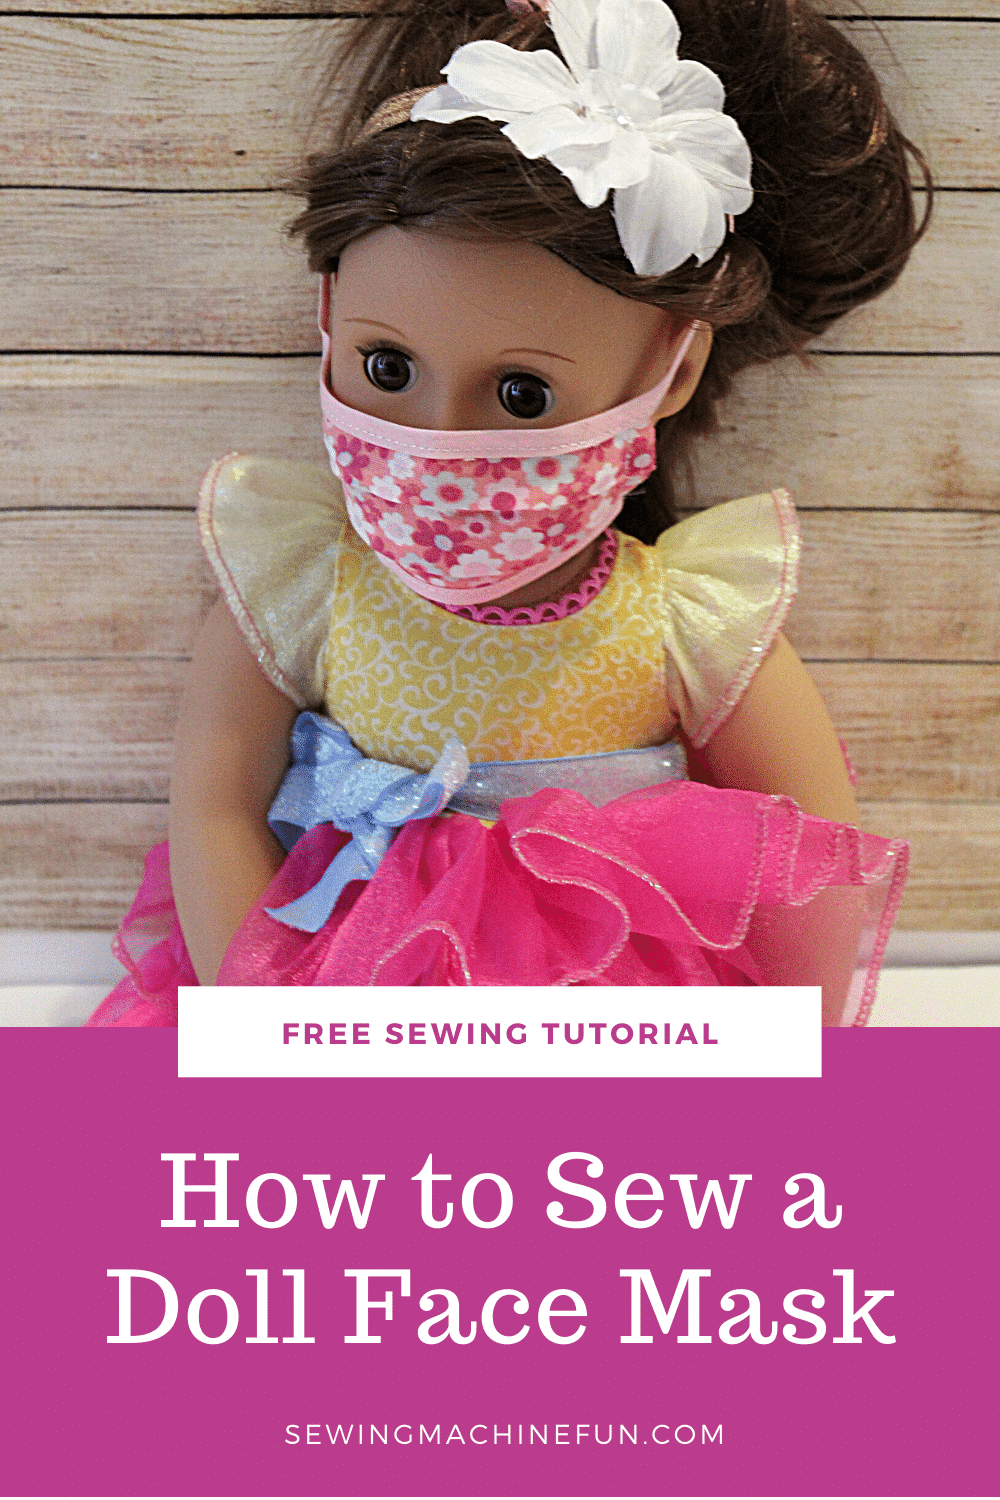 How to sew a doll face mask